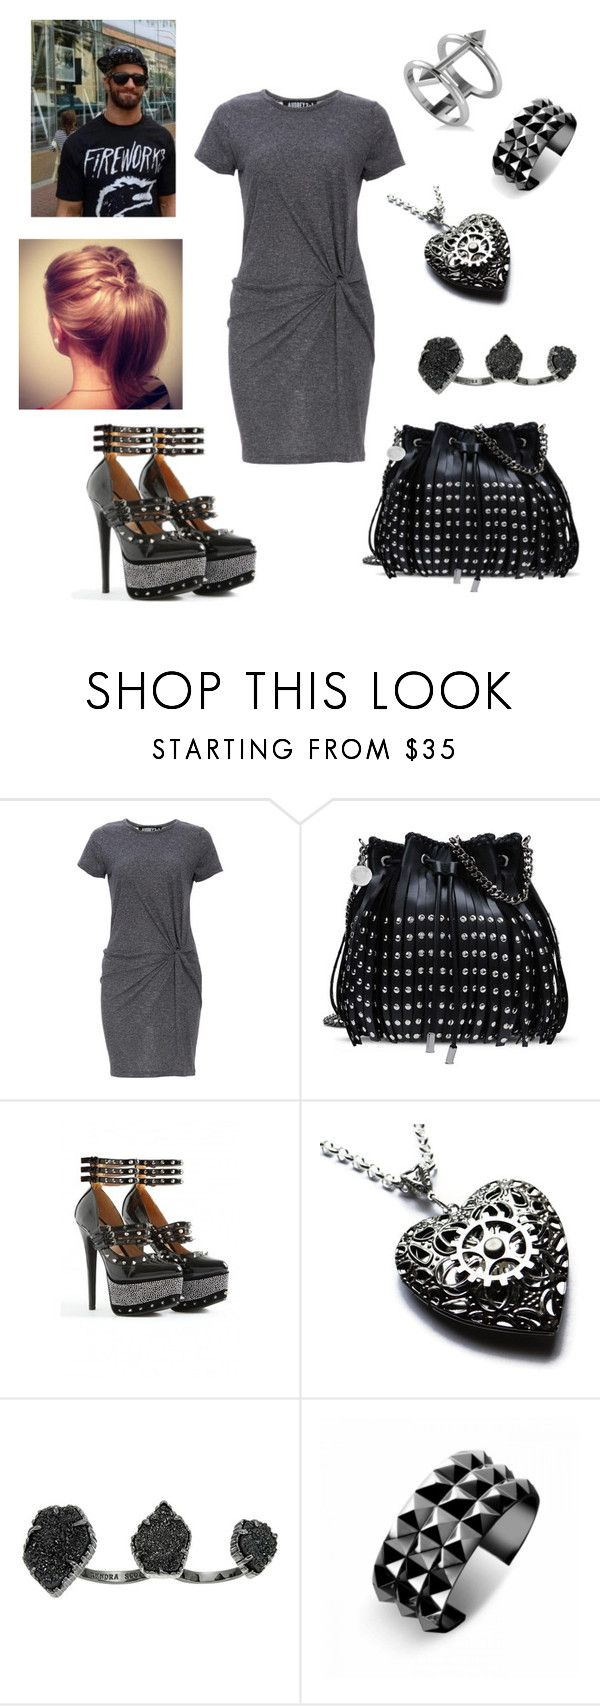 """""""Seth Rollins: you wear a t-shirt dress"""" by dpclma ❤ liked on Polyvore featuring Audrey 3+1, STELLA McCARTNEY, Kendra Scott, Waterford, Allurez and CO"""